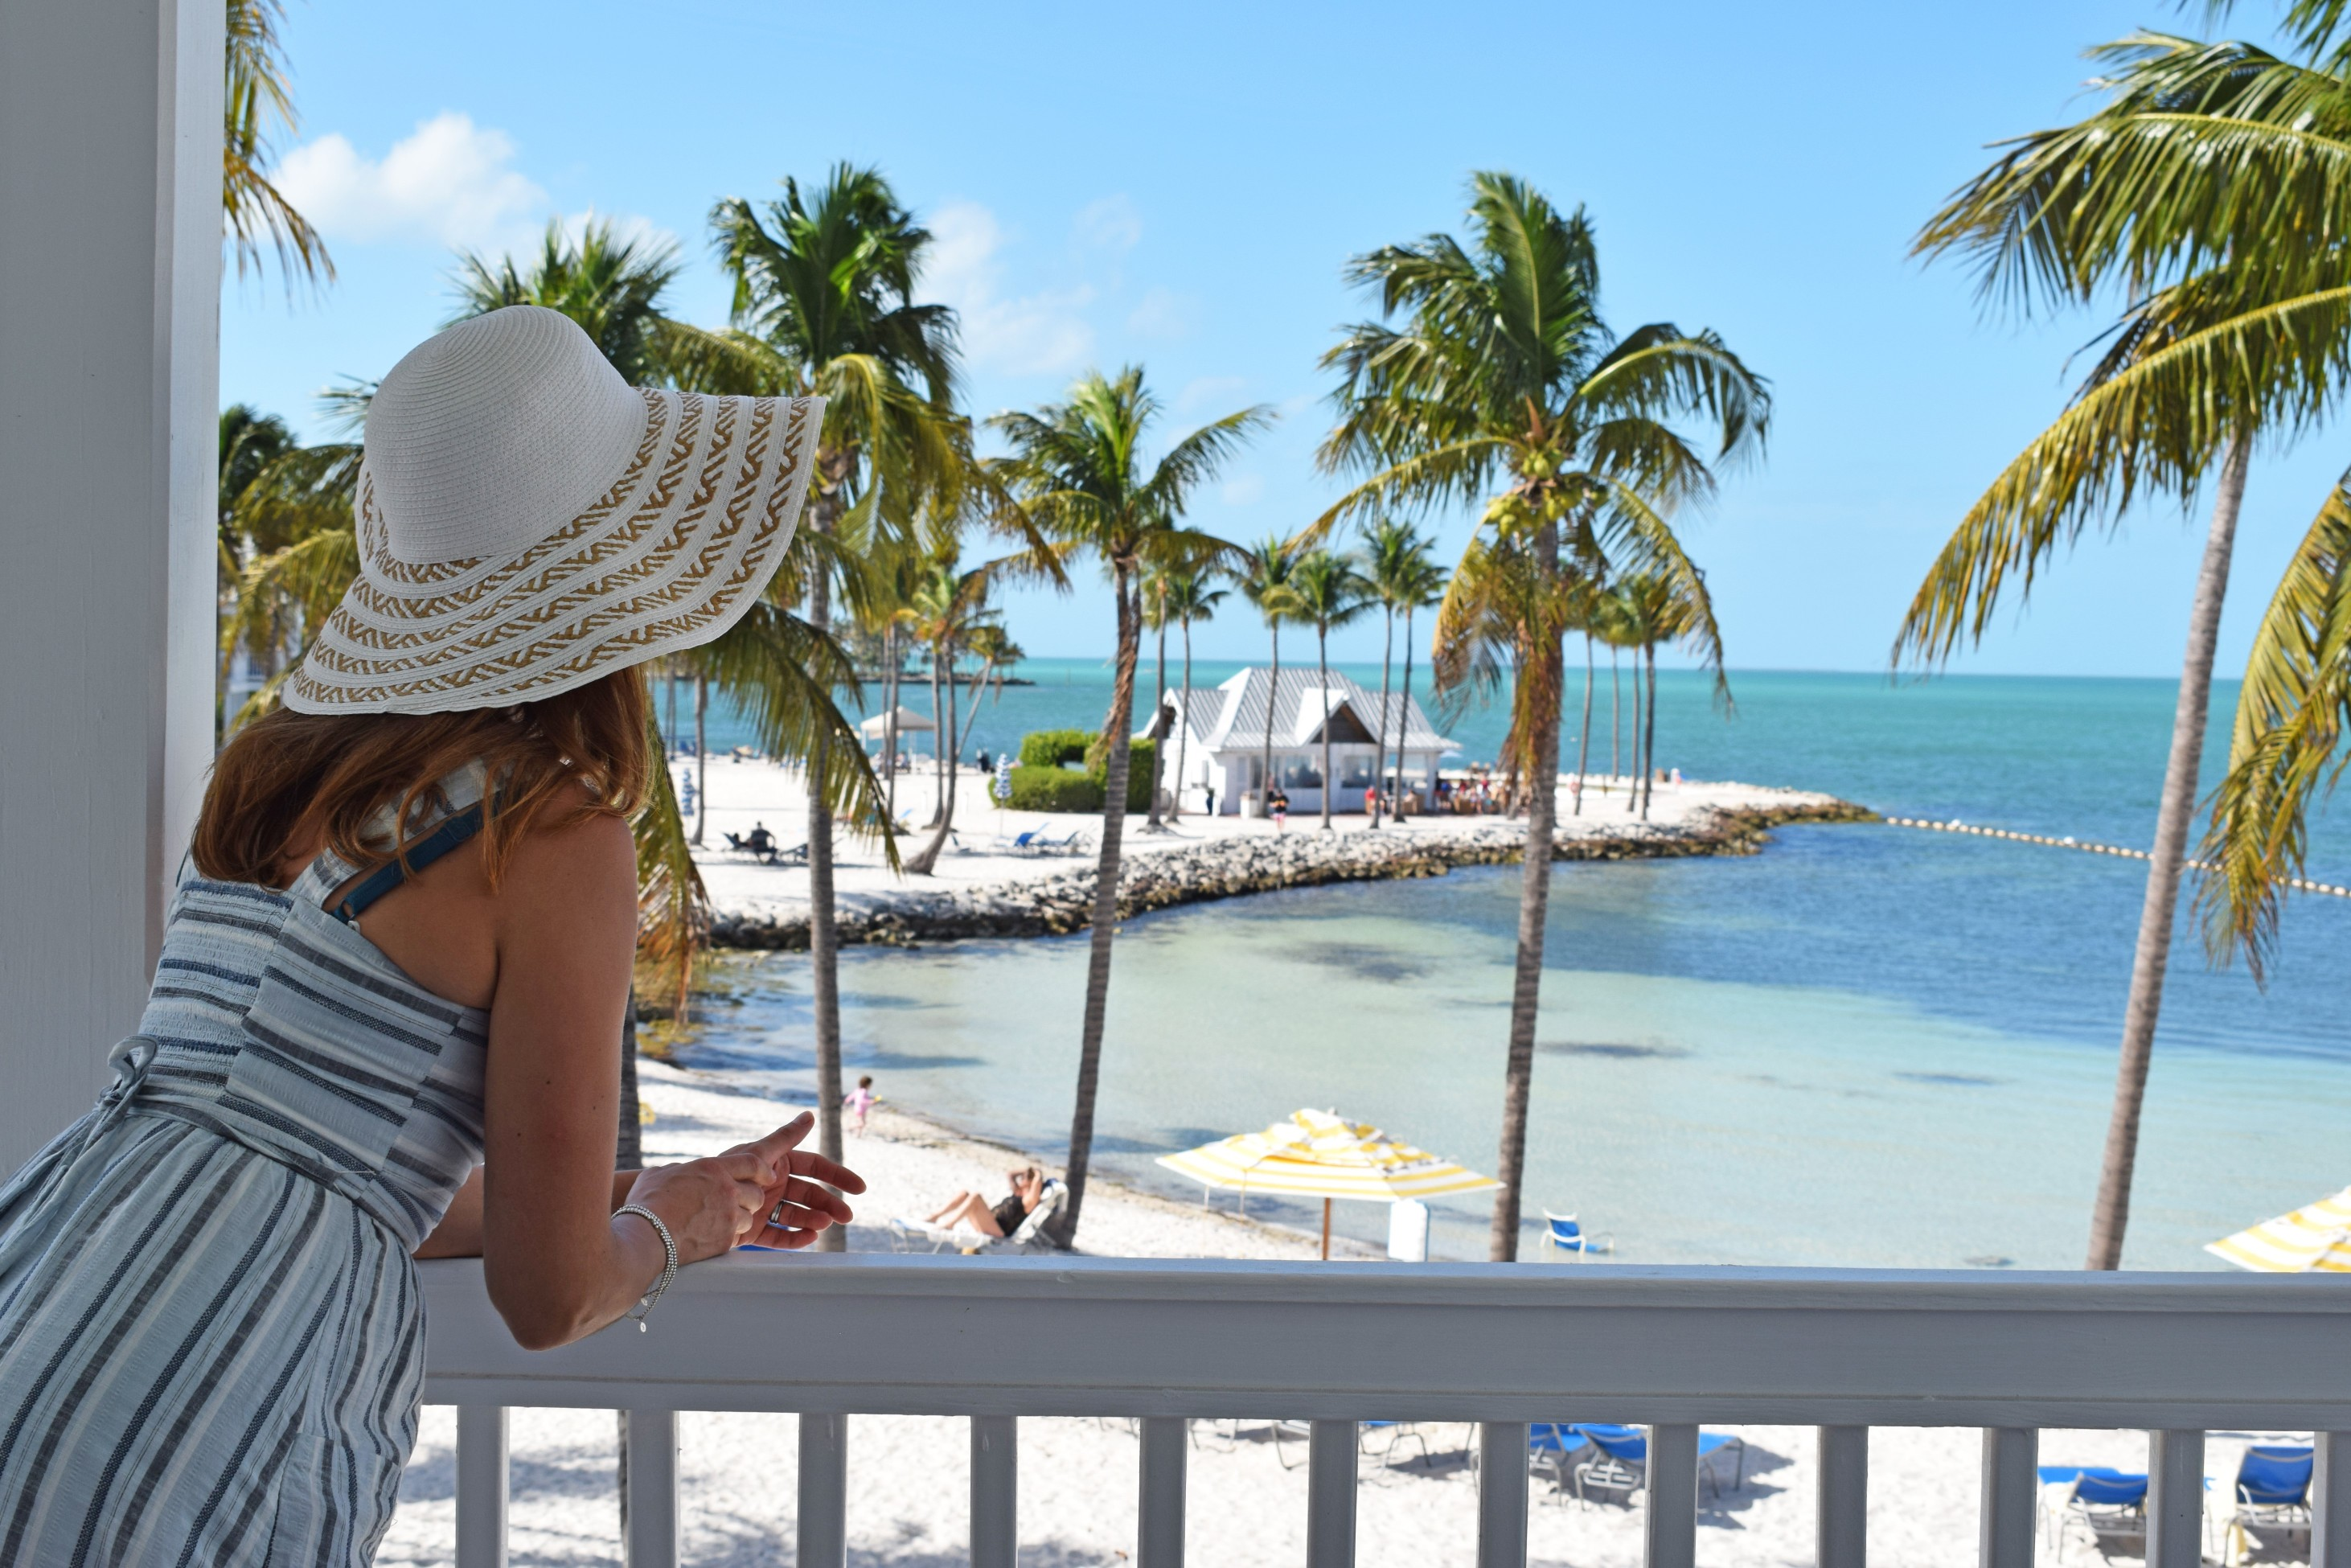 Lady unwinding on balcony, looking at stunning sea view